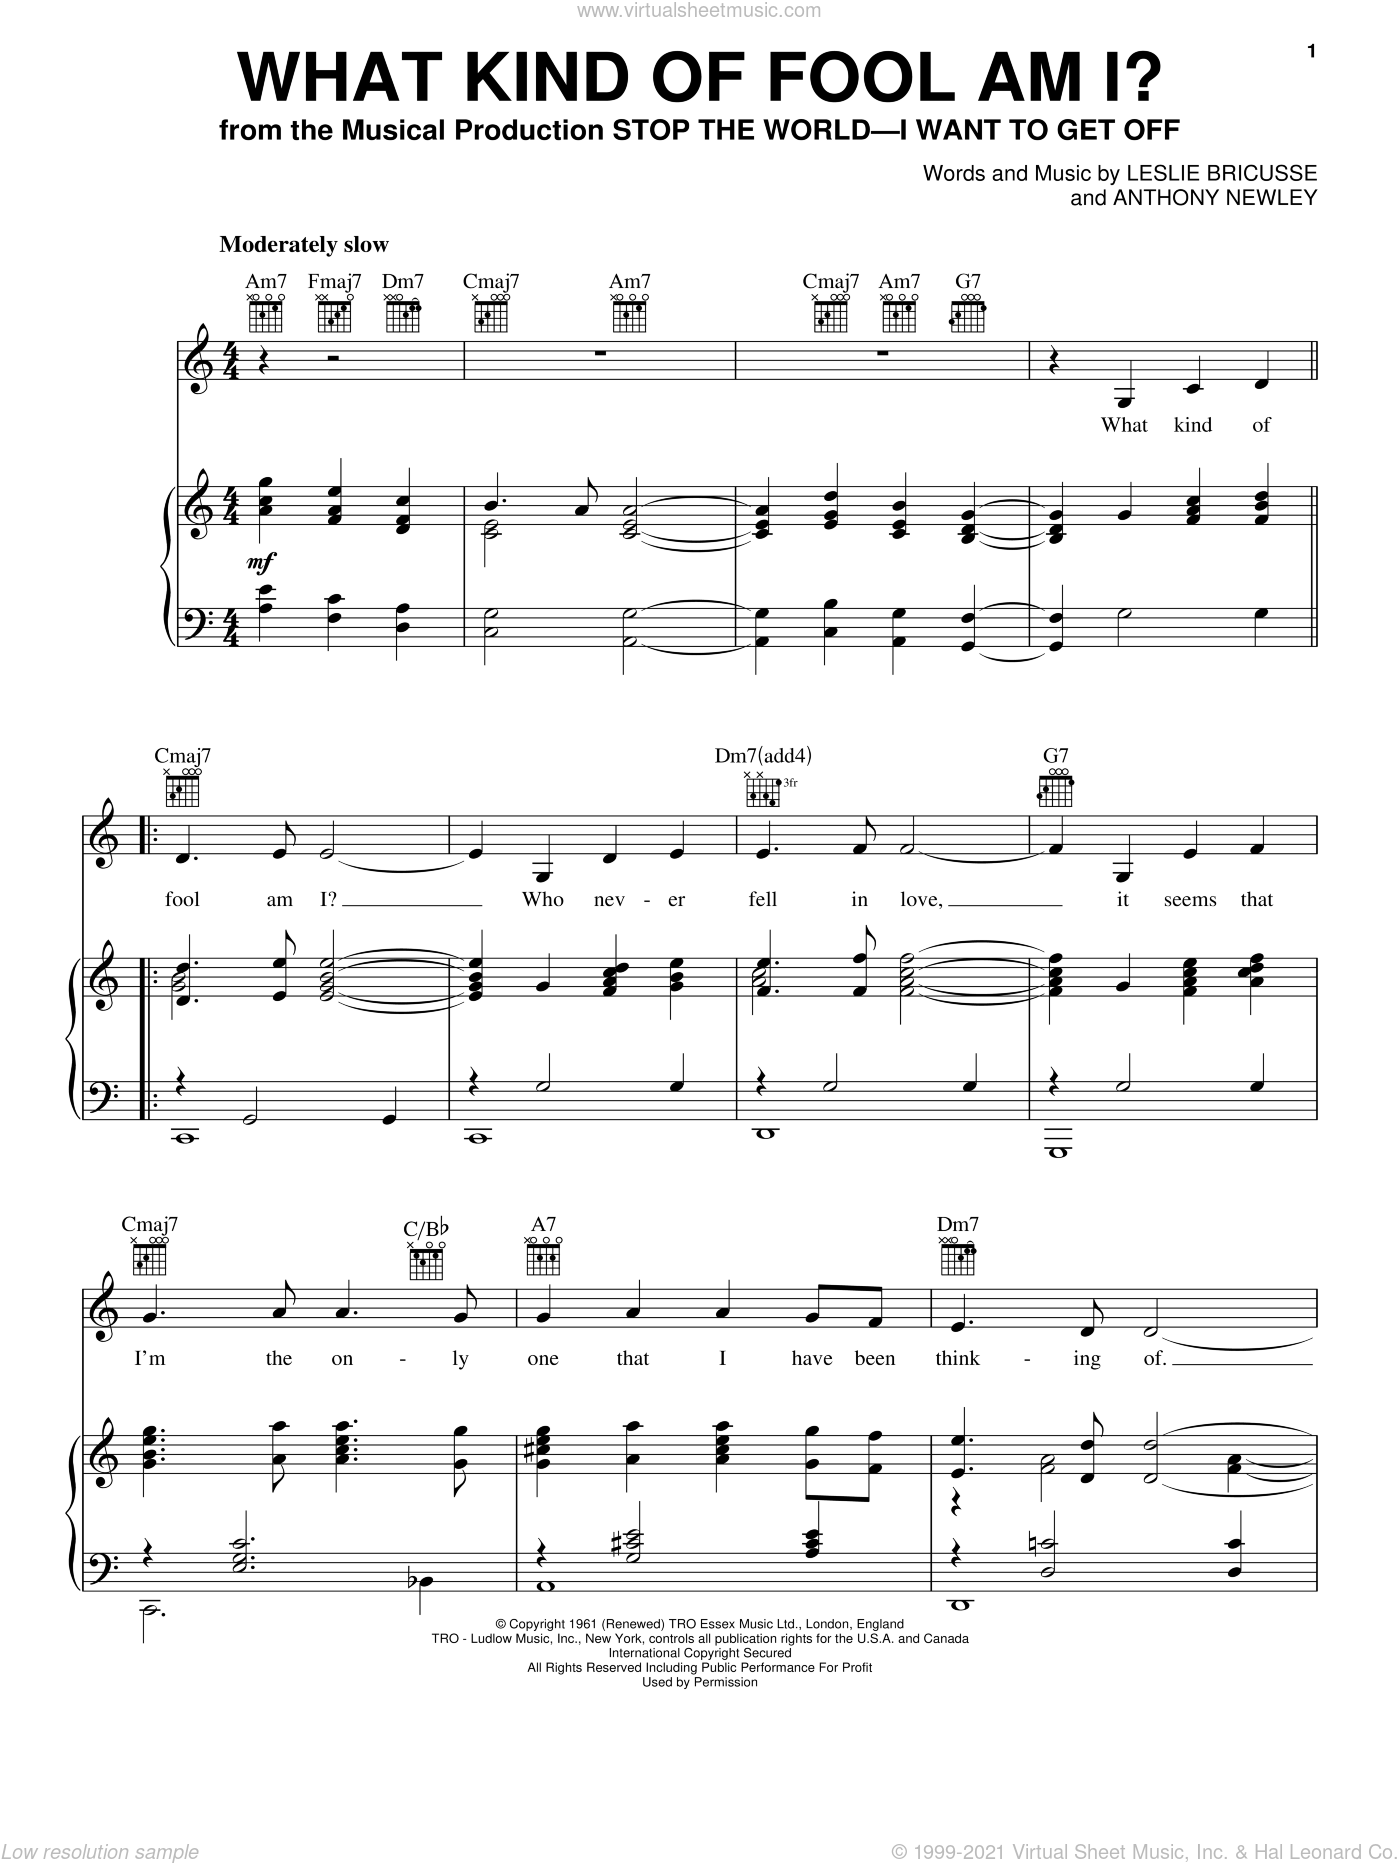 What Kind Of Fool Am I? sheet music for voice, piano or guitar by Leslie Bricusse, Bill Evans, Robert Goulet, Sammy Davis, Jr., Sarah Vaughan and Anthony Newley, intermediate. Score Image Preview.